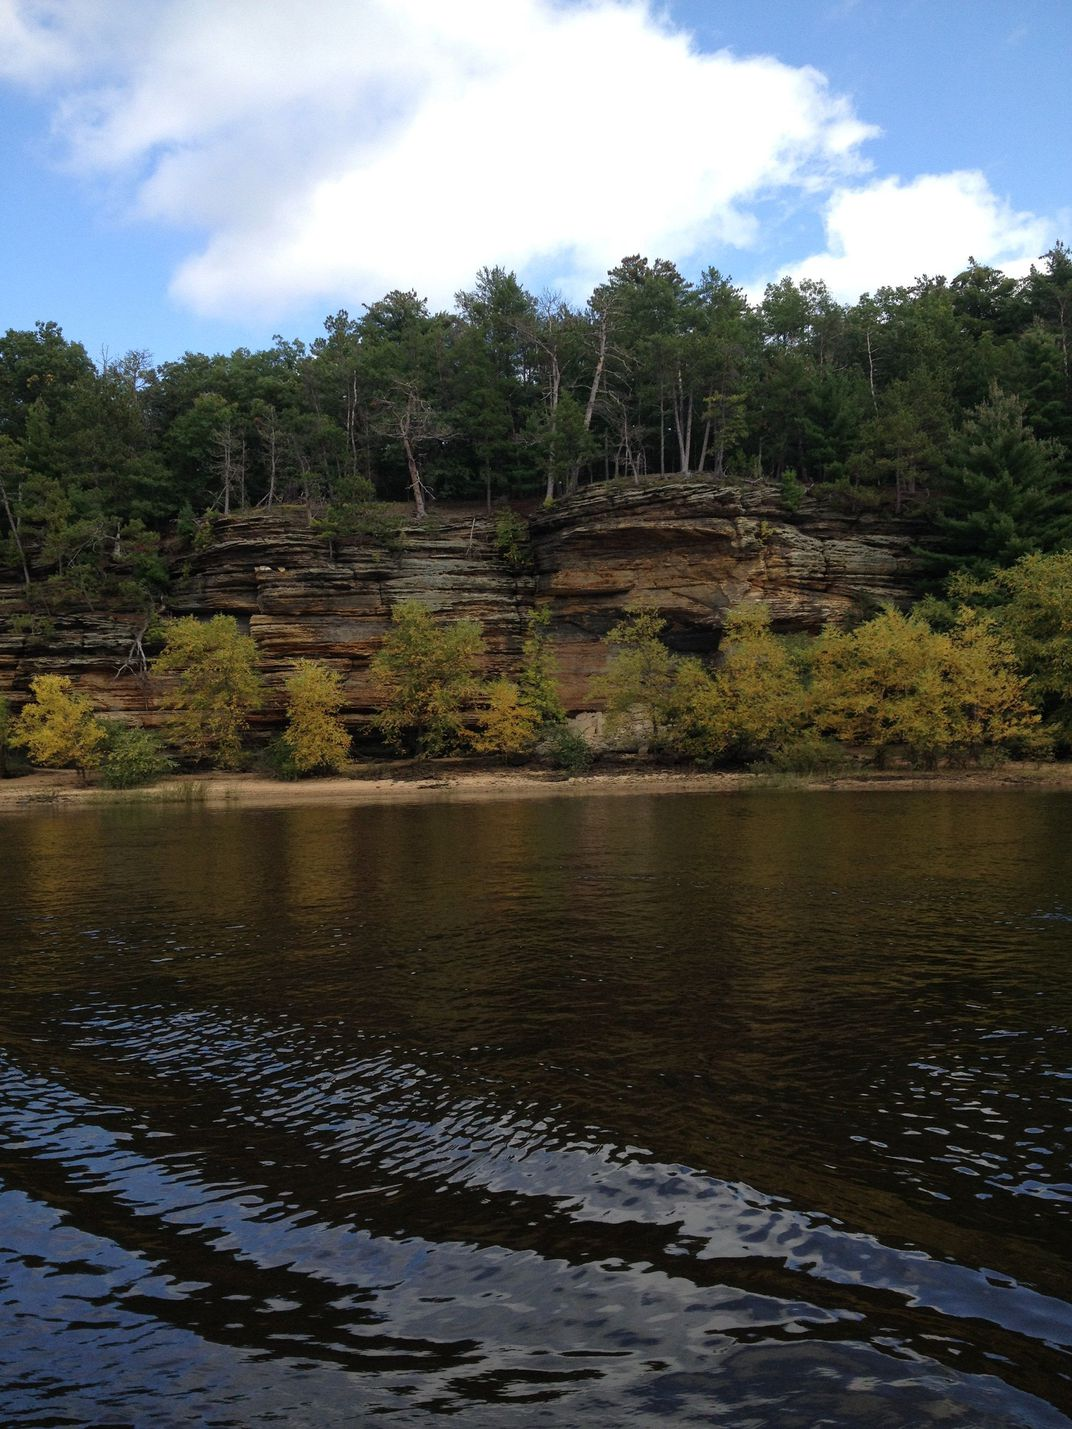 Wisconsin Dells And The Beautiful Cambrian Sandstone Rock - The incredible winners of the 14th smithsonian photo competition